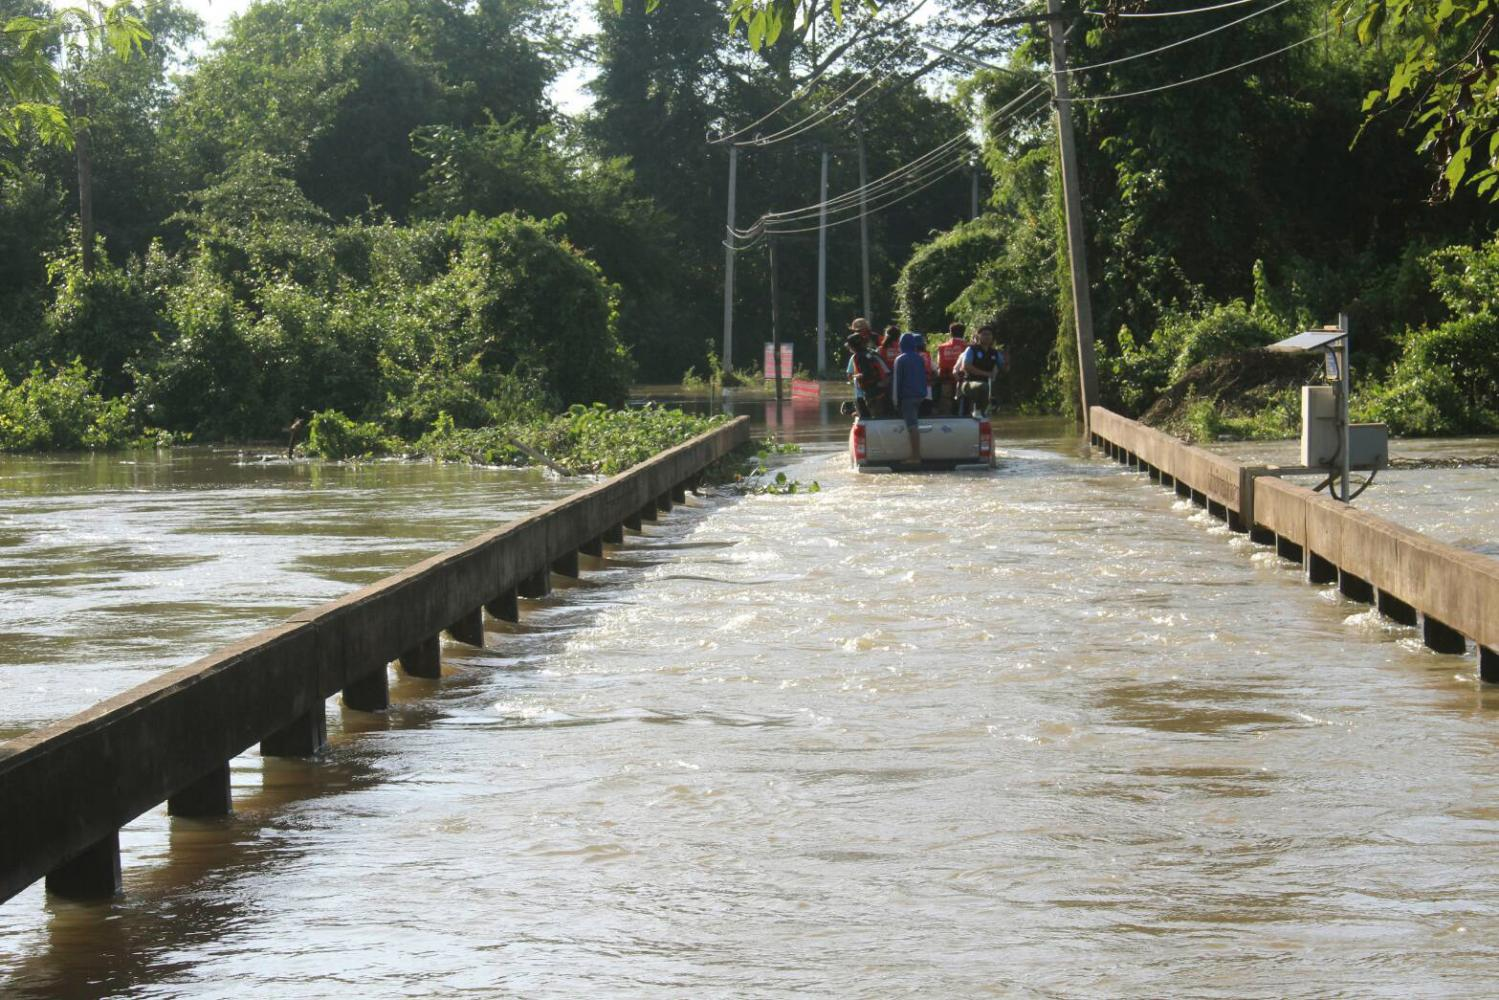 A pickup truck carrying residents drives slowly over a flooded bridge in Ban Rai village in Chok Chai district of Nakhon Ratchasima. PRASIT TANGPRASERT